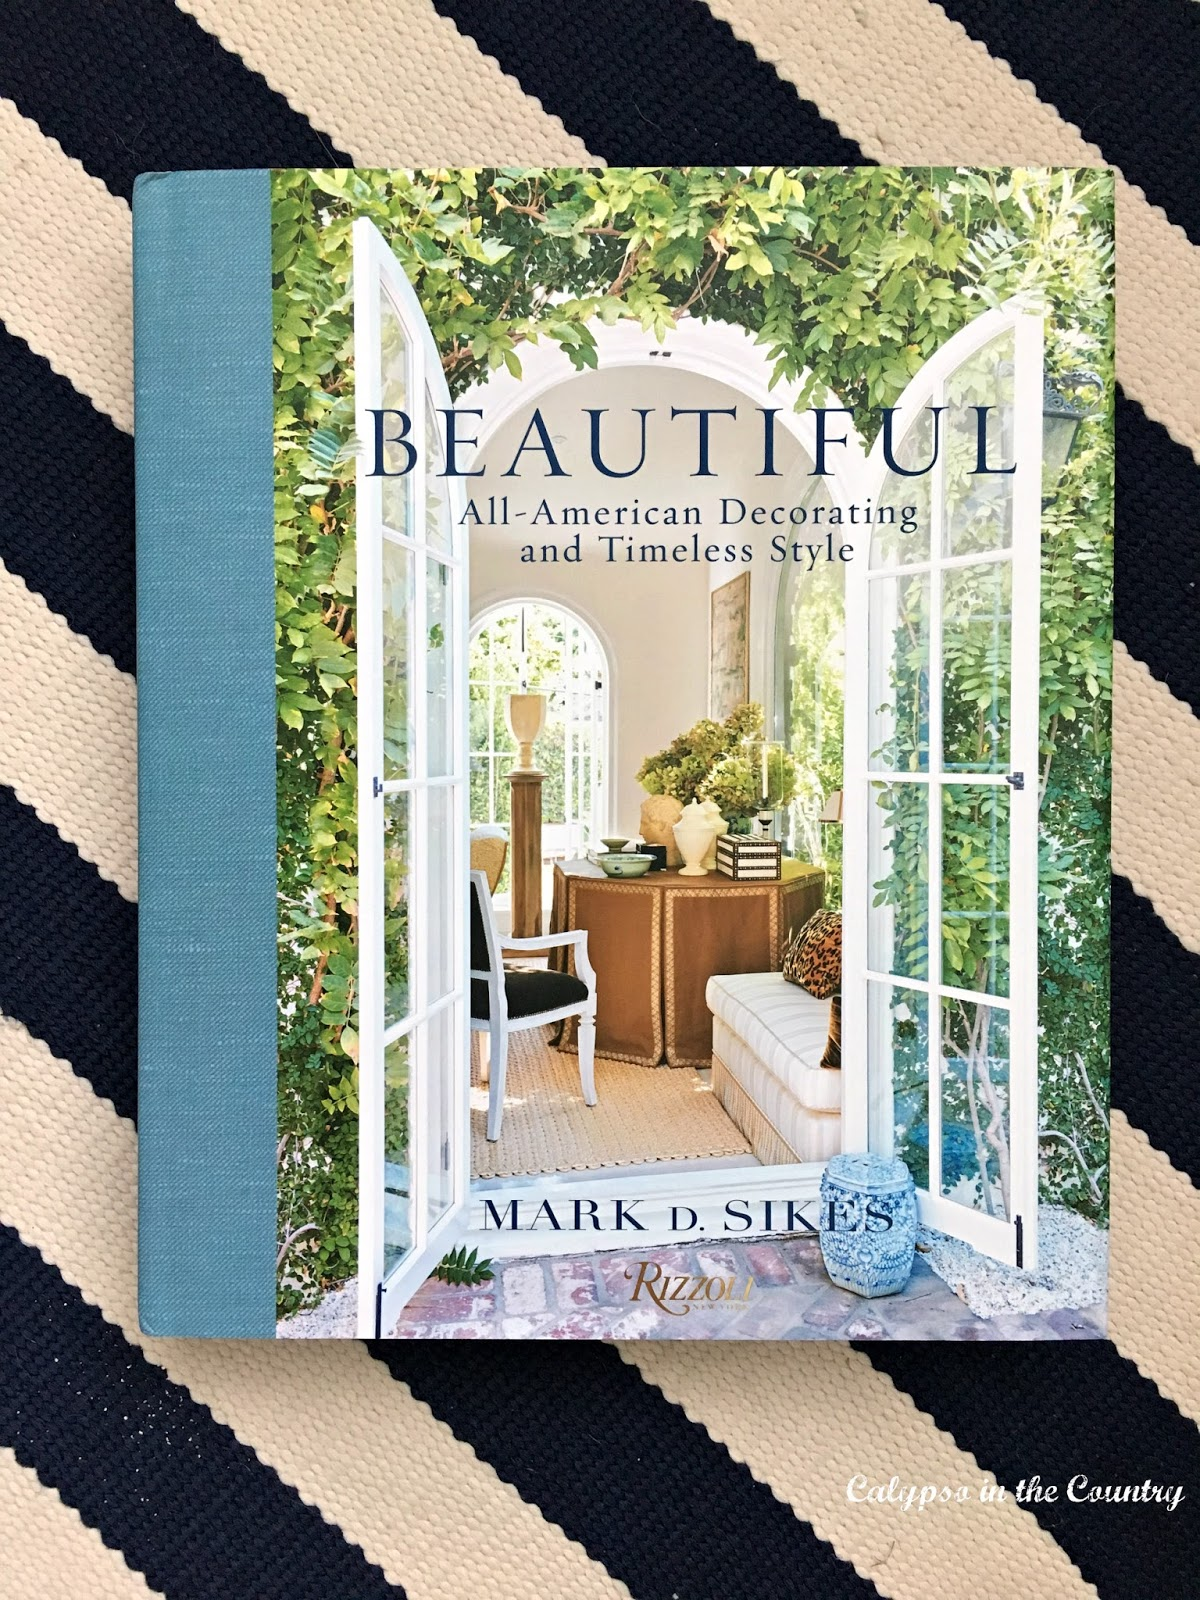 Beautiful by Mark D Sikes - My new favorite design book